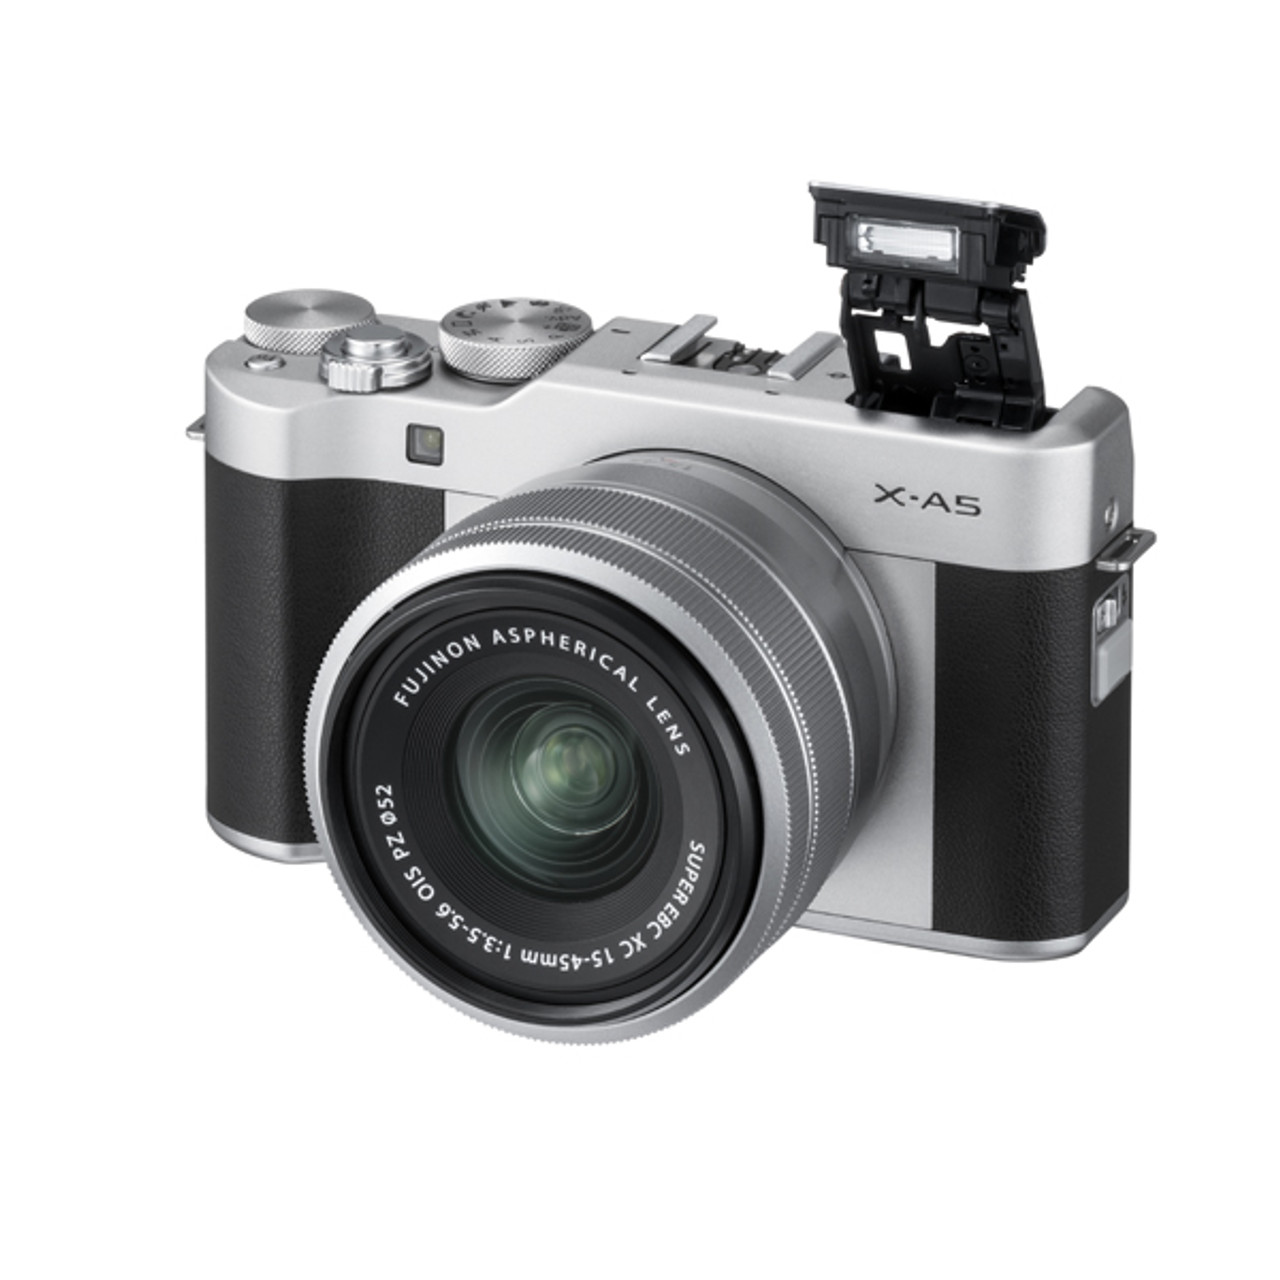 Fujifilm X-A5 XC 15-45mm PZ Kit Silver